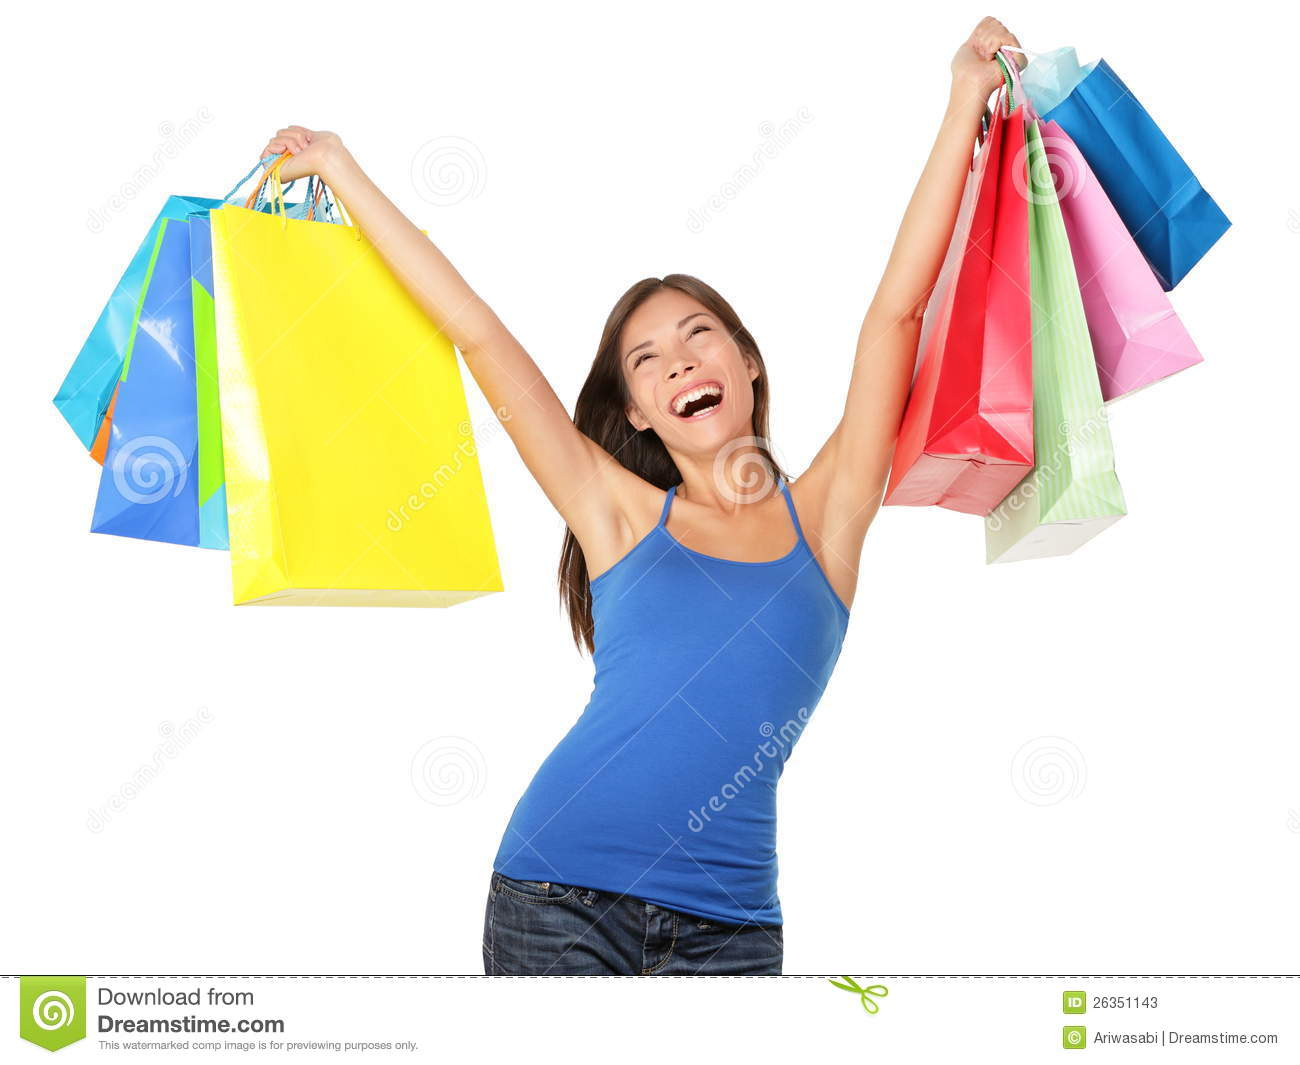 happy-shopping-woman-26351143.jpg